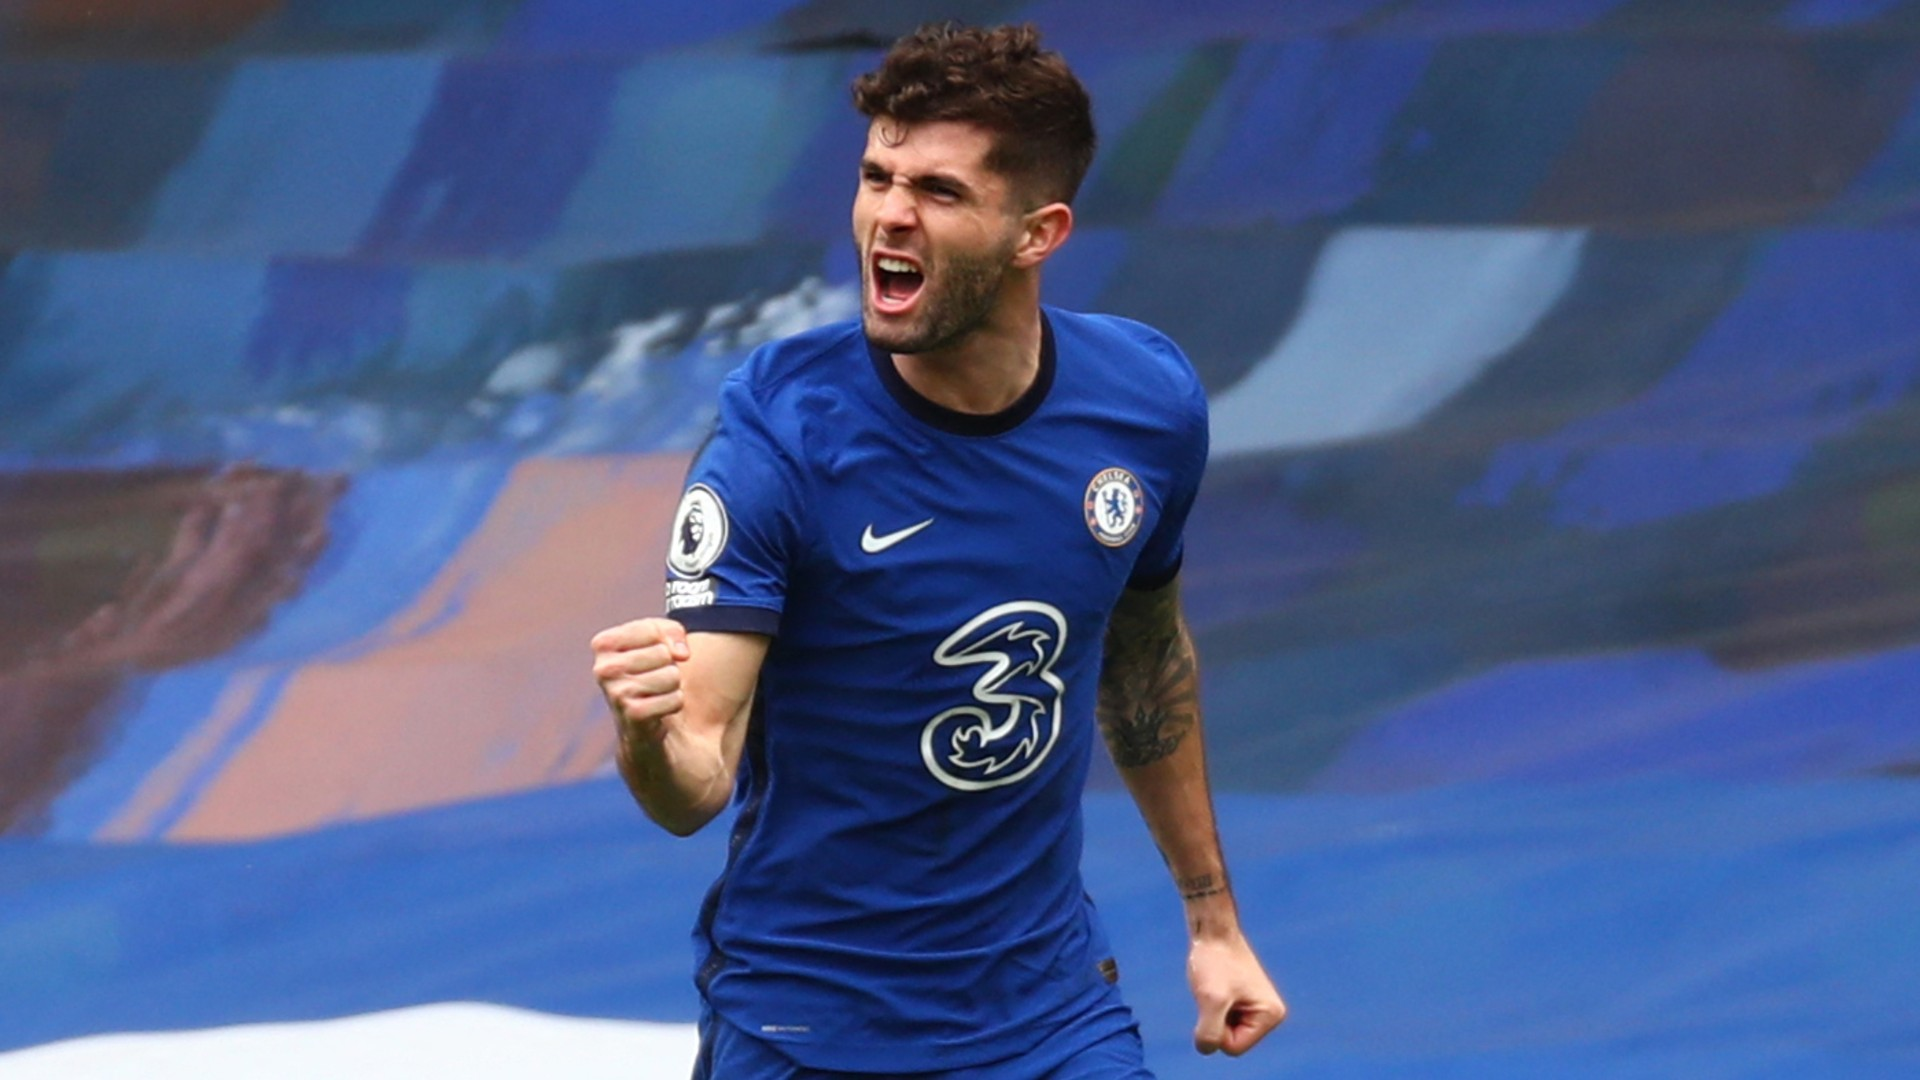 Pulisic eager to 'hit the ground running' for Chelsea in 2021-22 as he benefits from full pre-season campaign